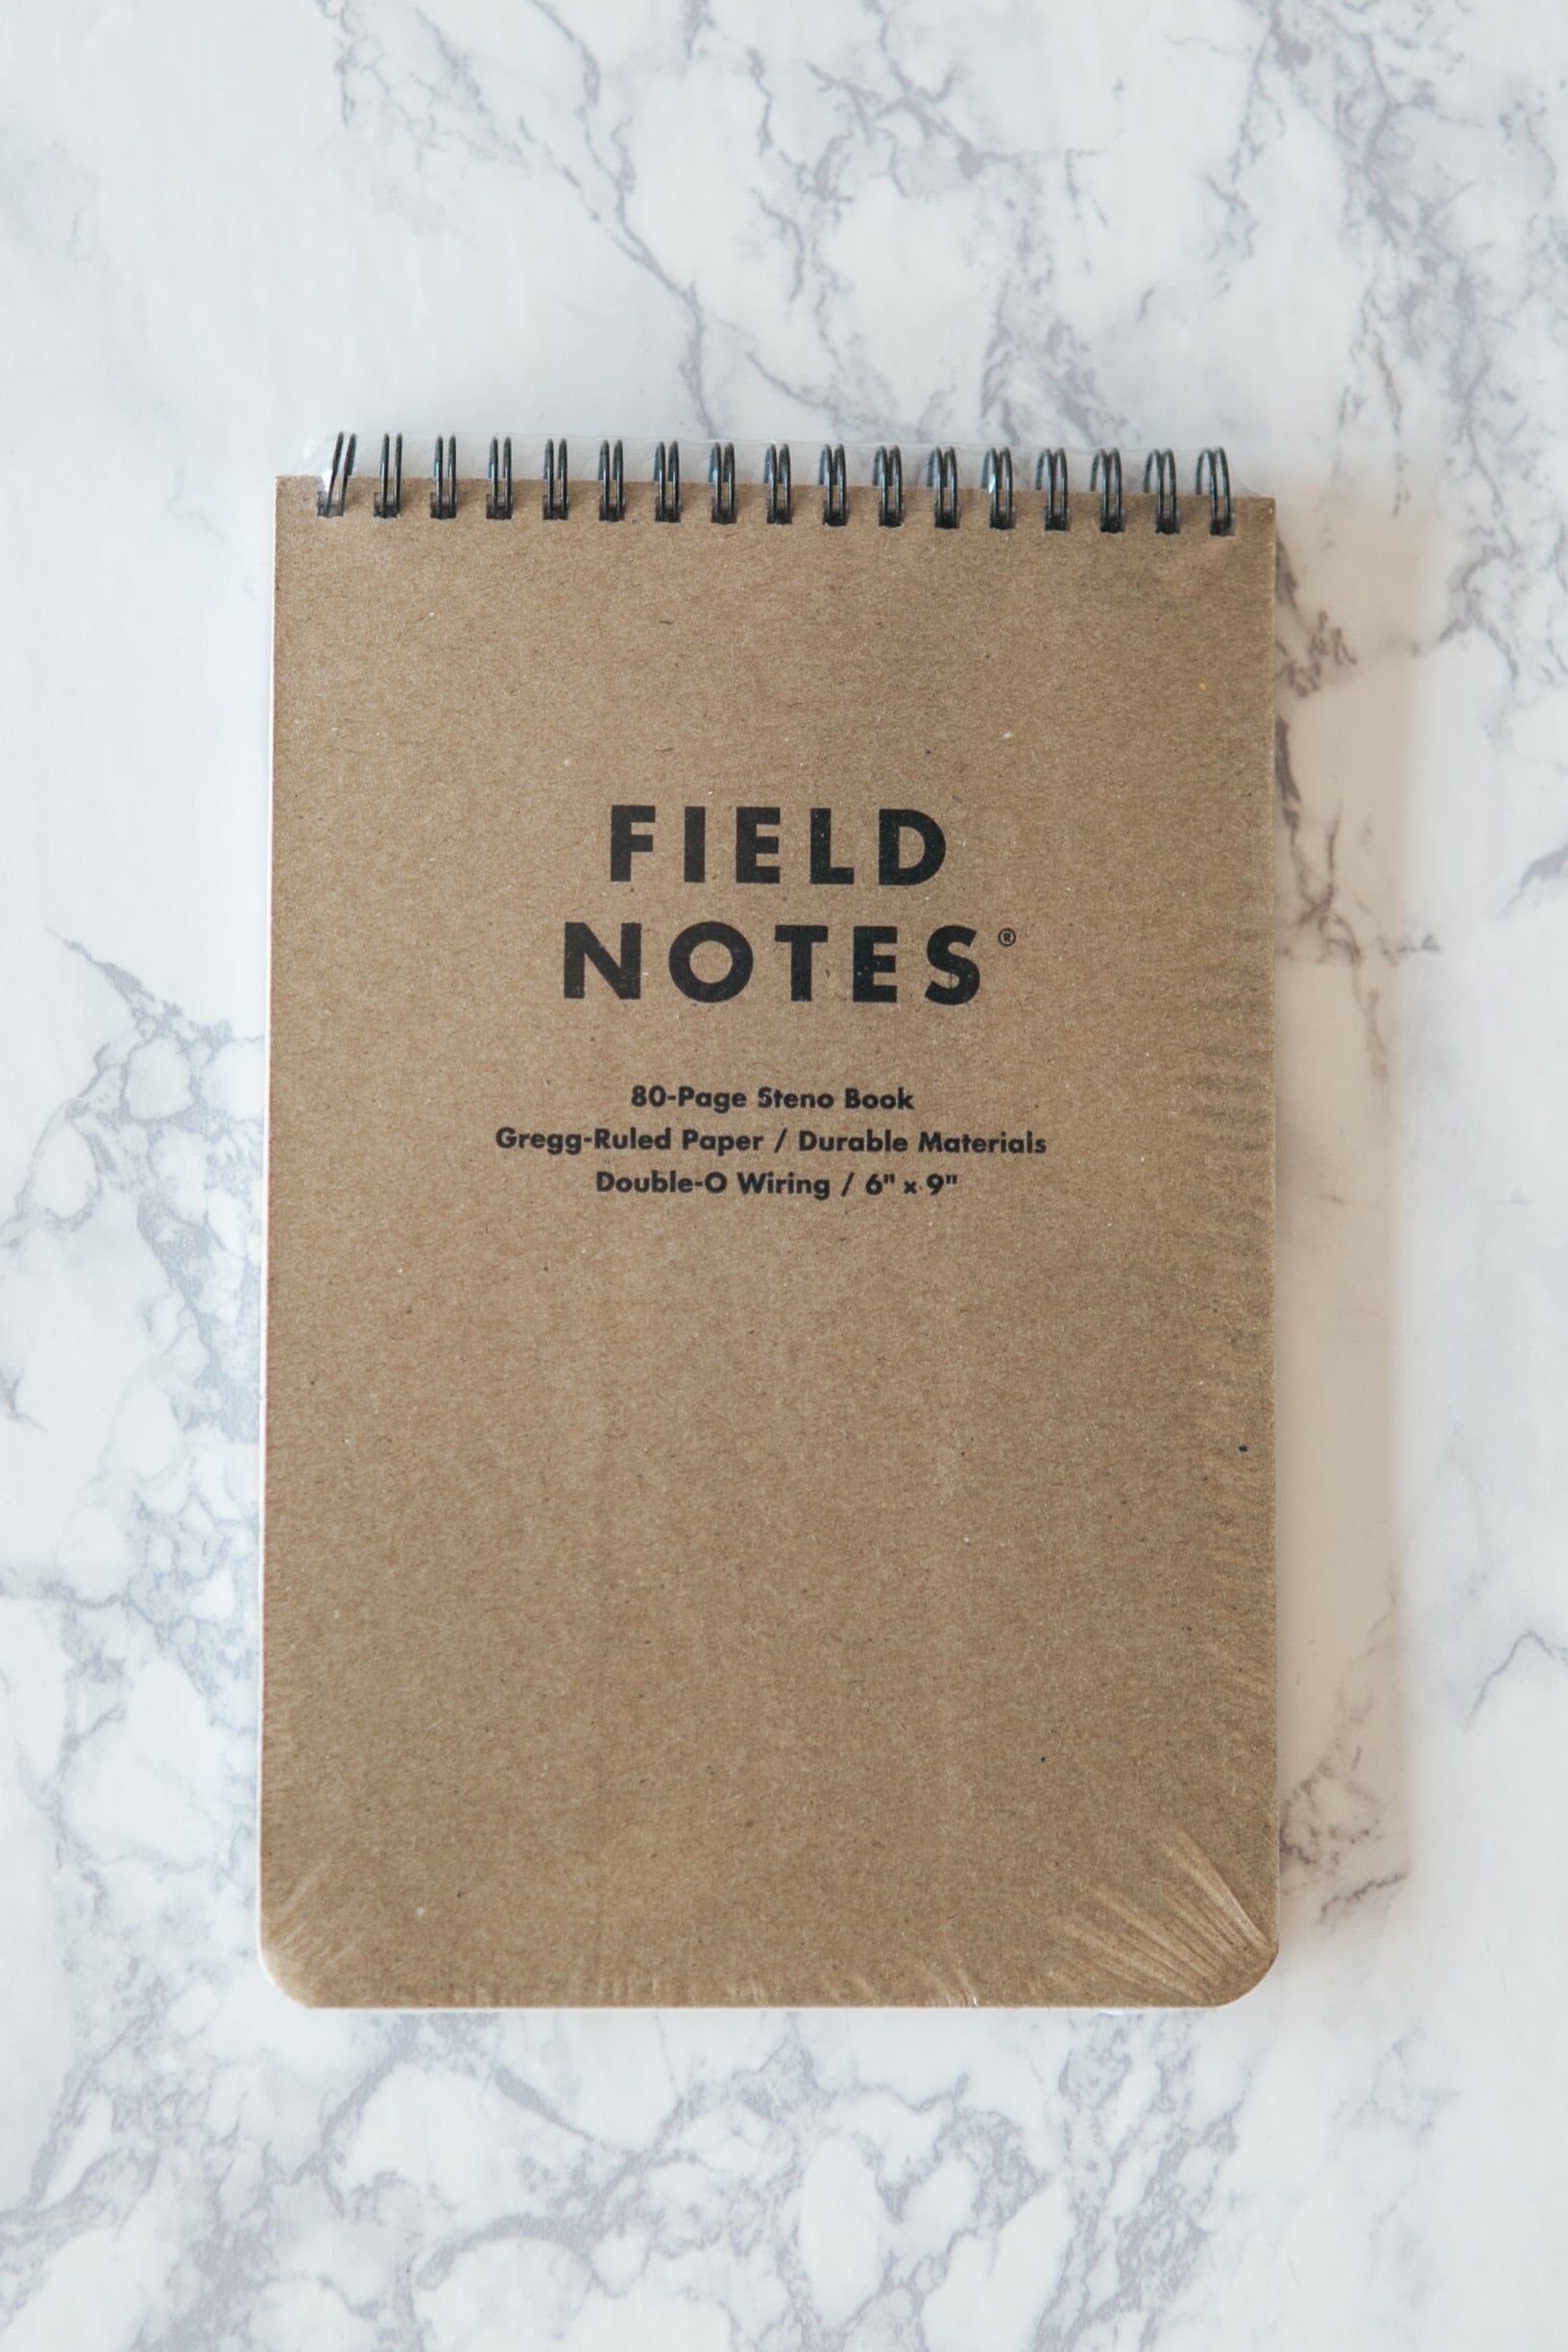 Steno Book Reporter's Notebooks - Field Notes